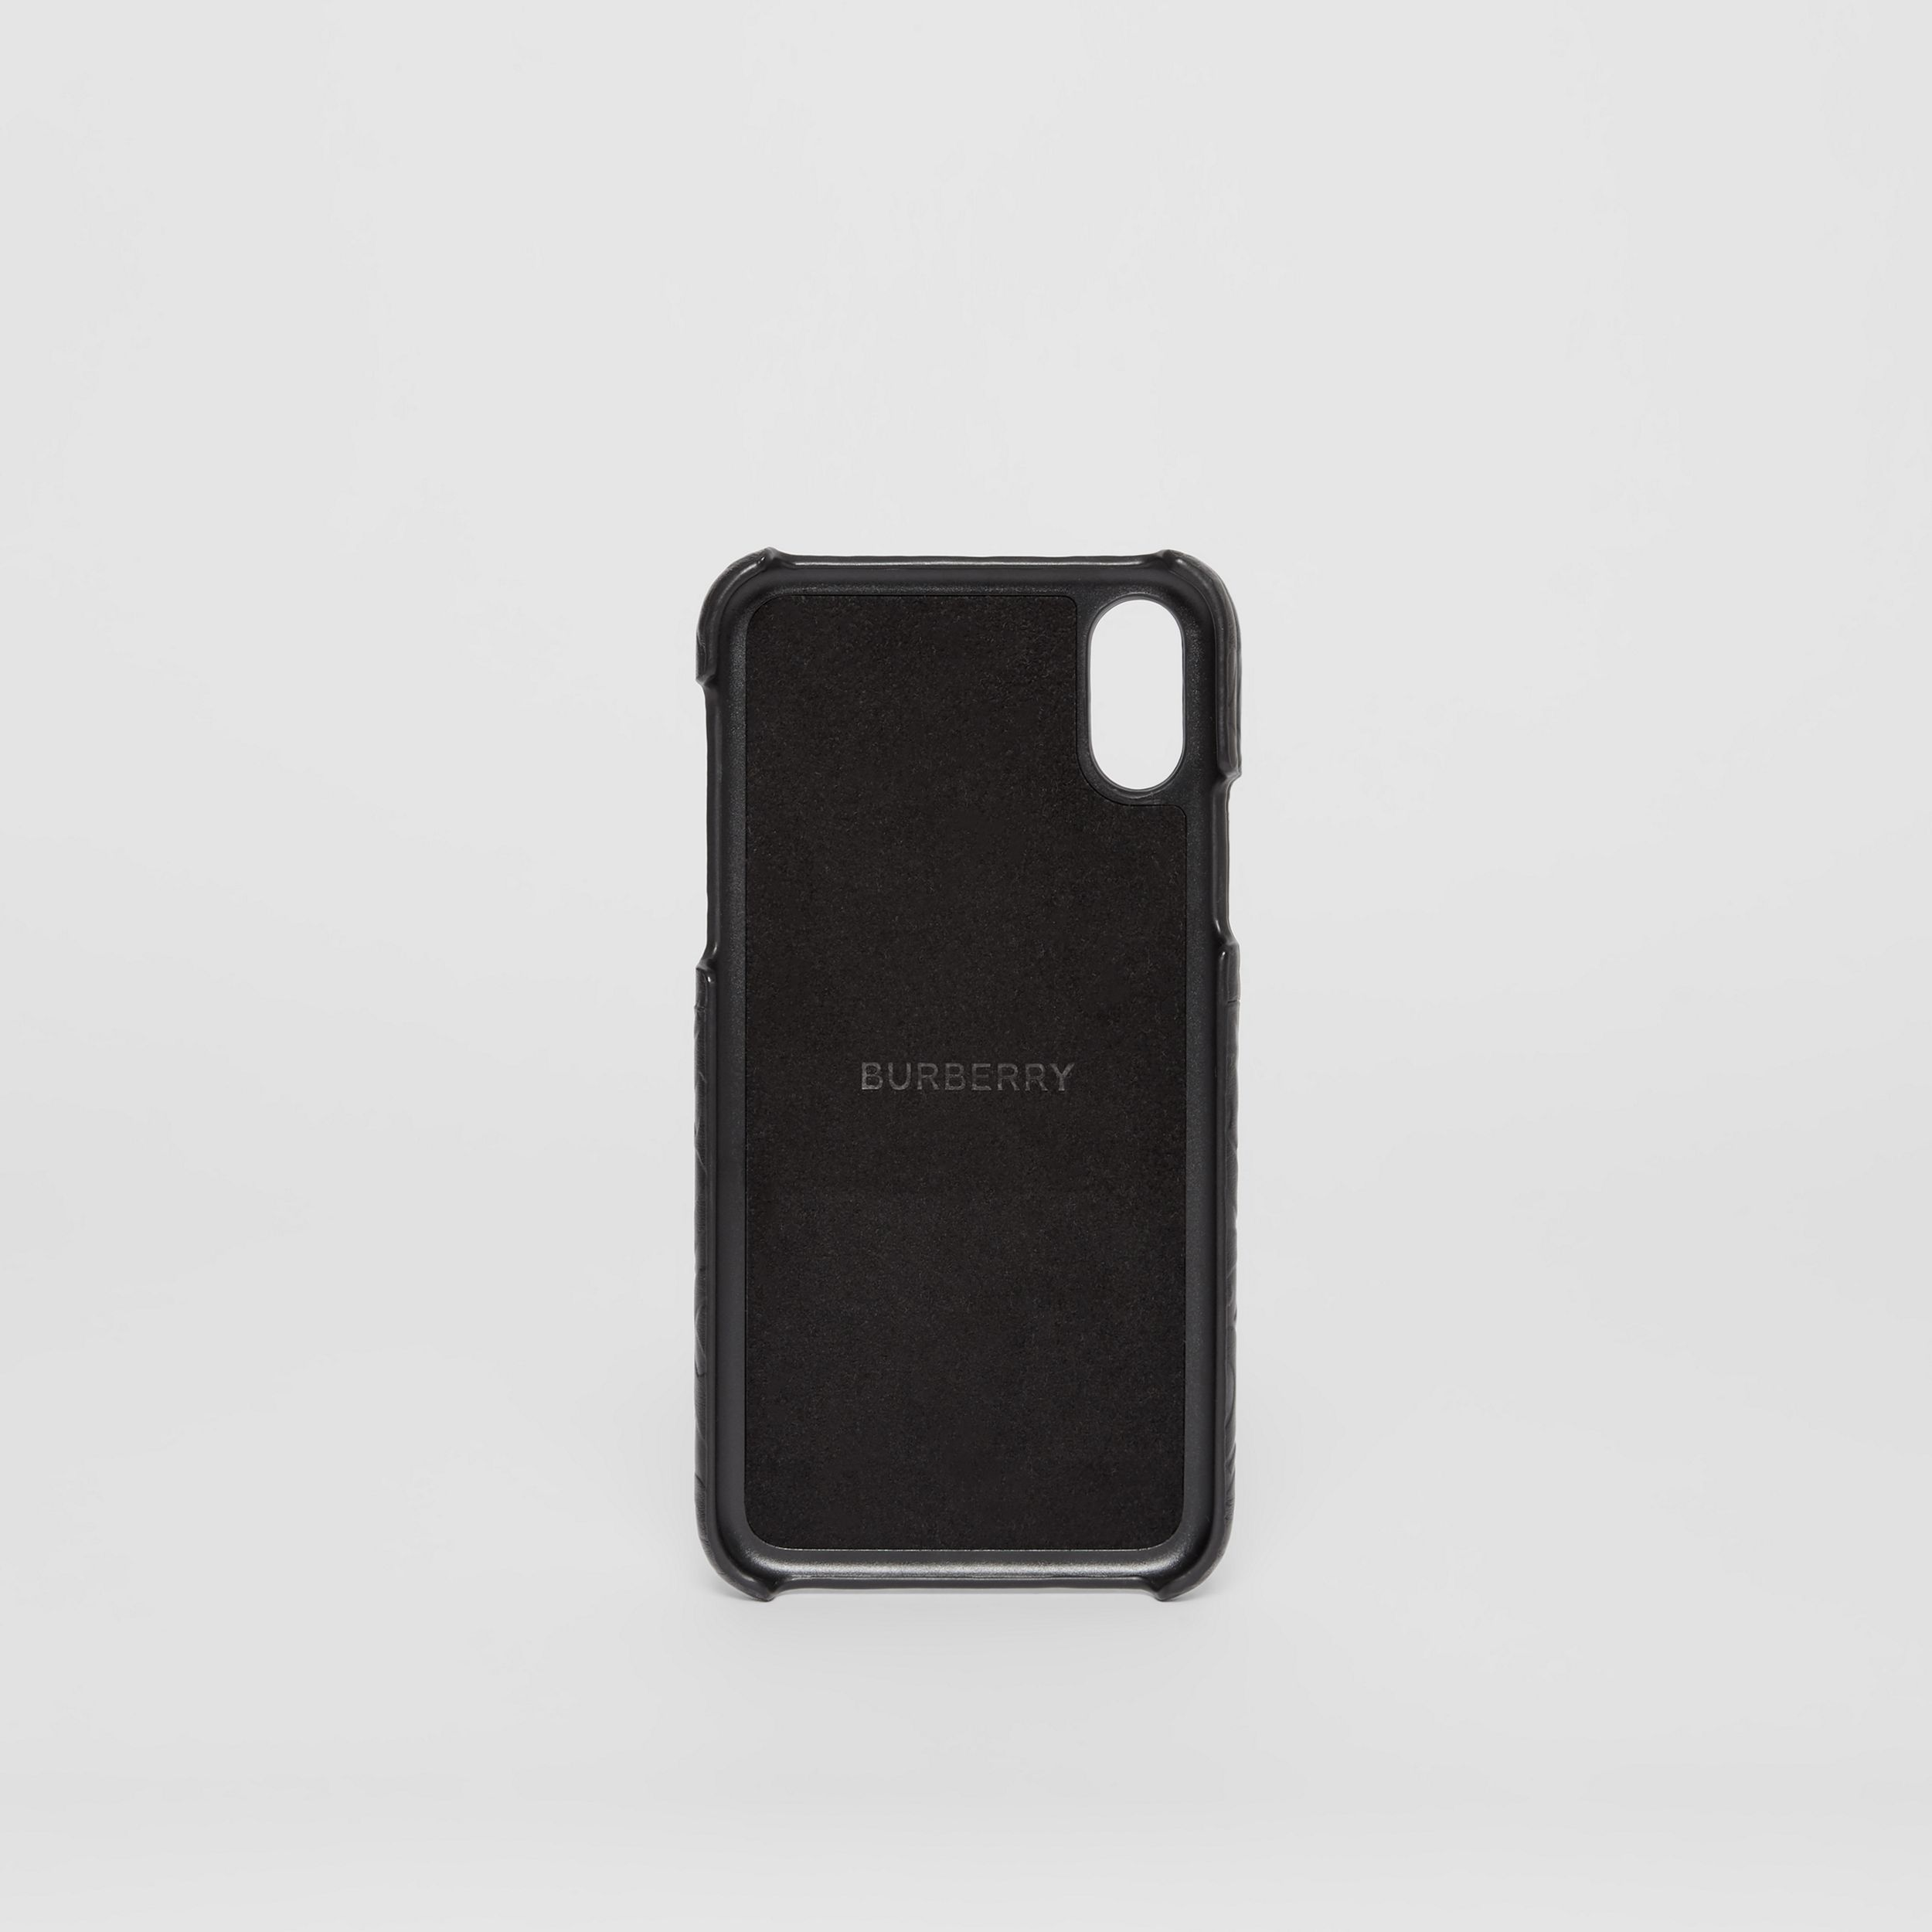 Monogram Leather iPhone X/XS Case in Black | Burberry United Kingdom - 4